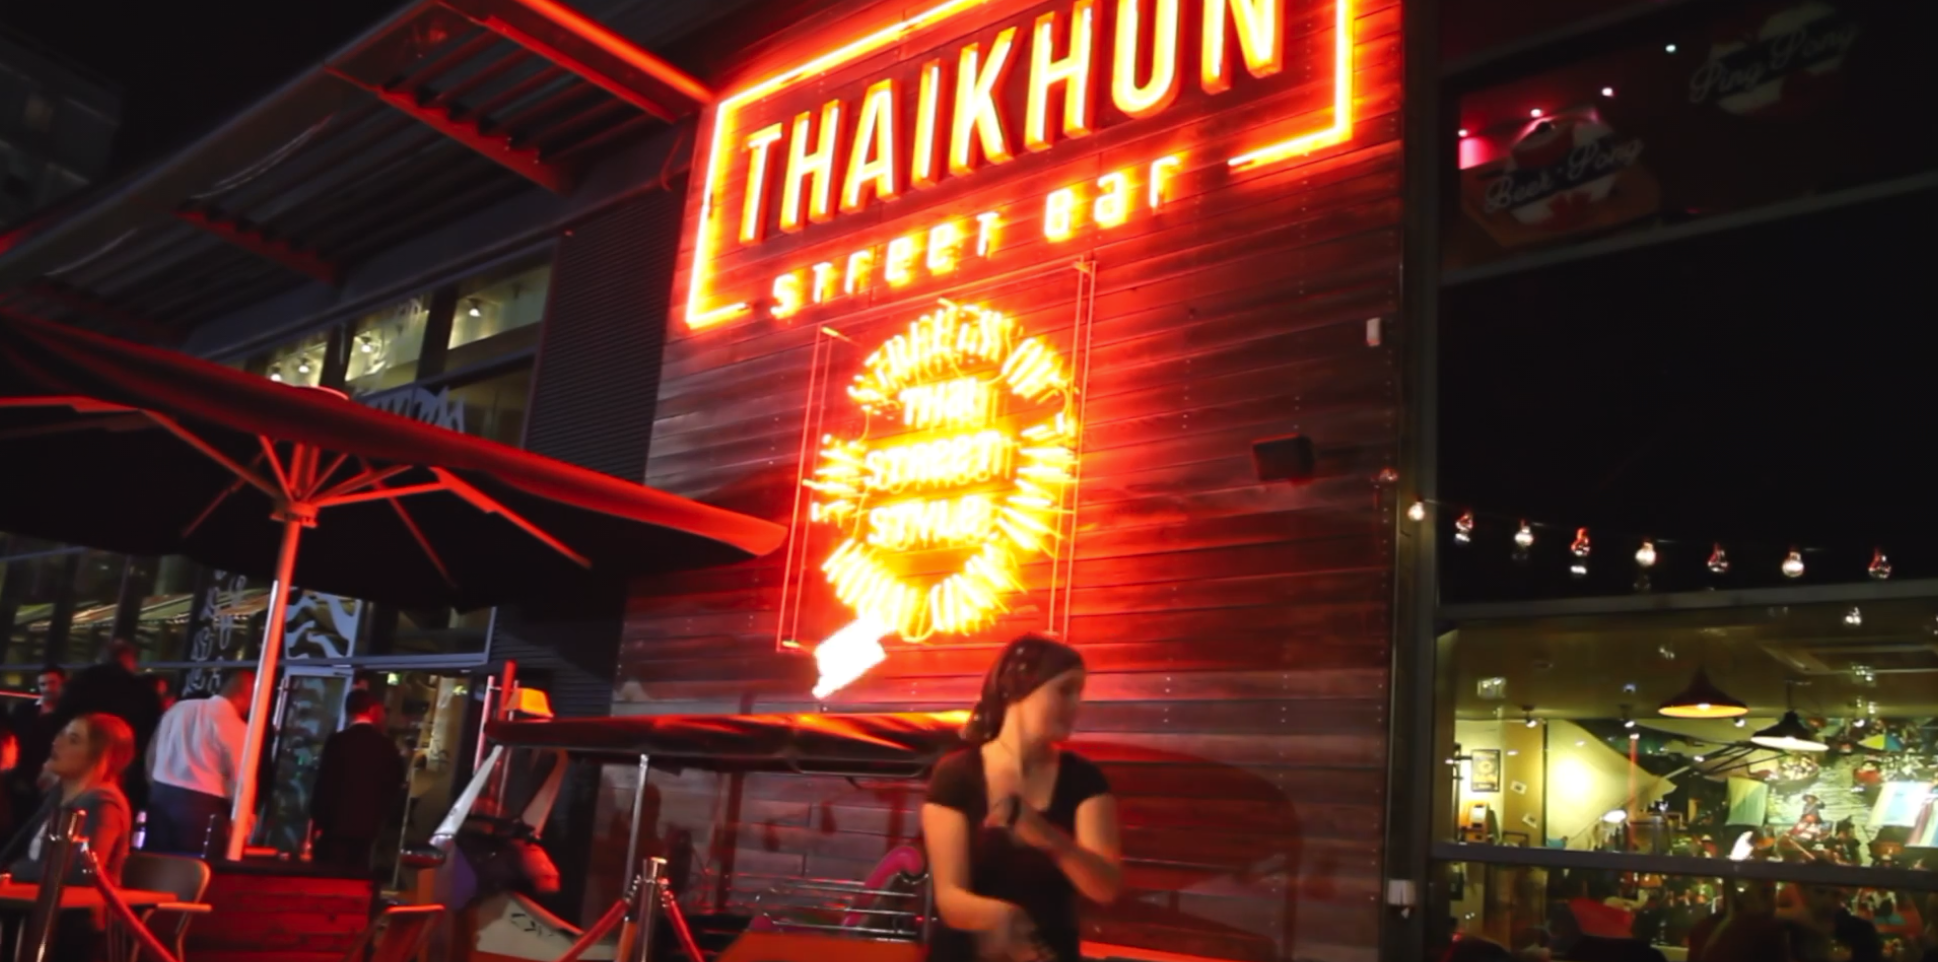 Thaikhun Street Bar - Thaikhun Is a Thai inspired street bar based in Liverpool